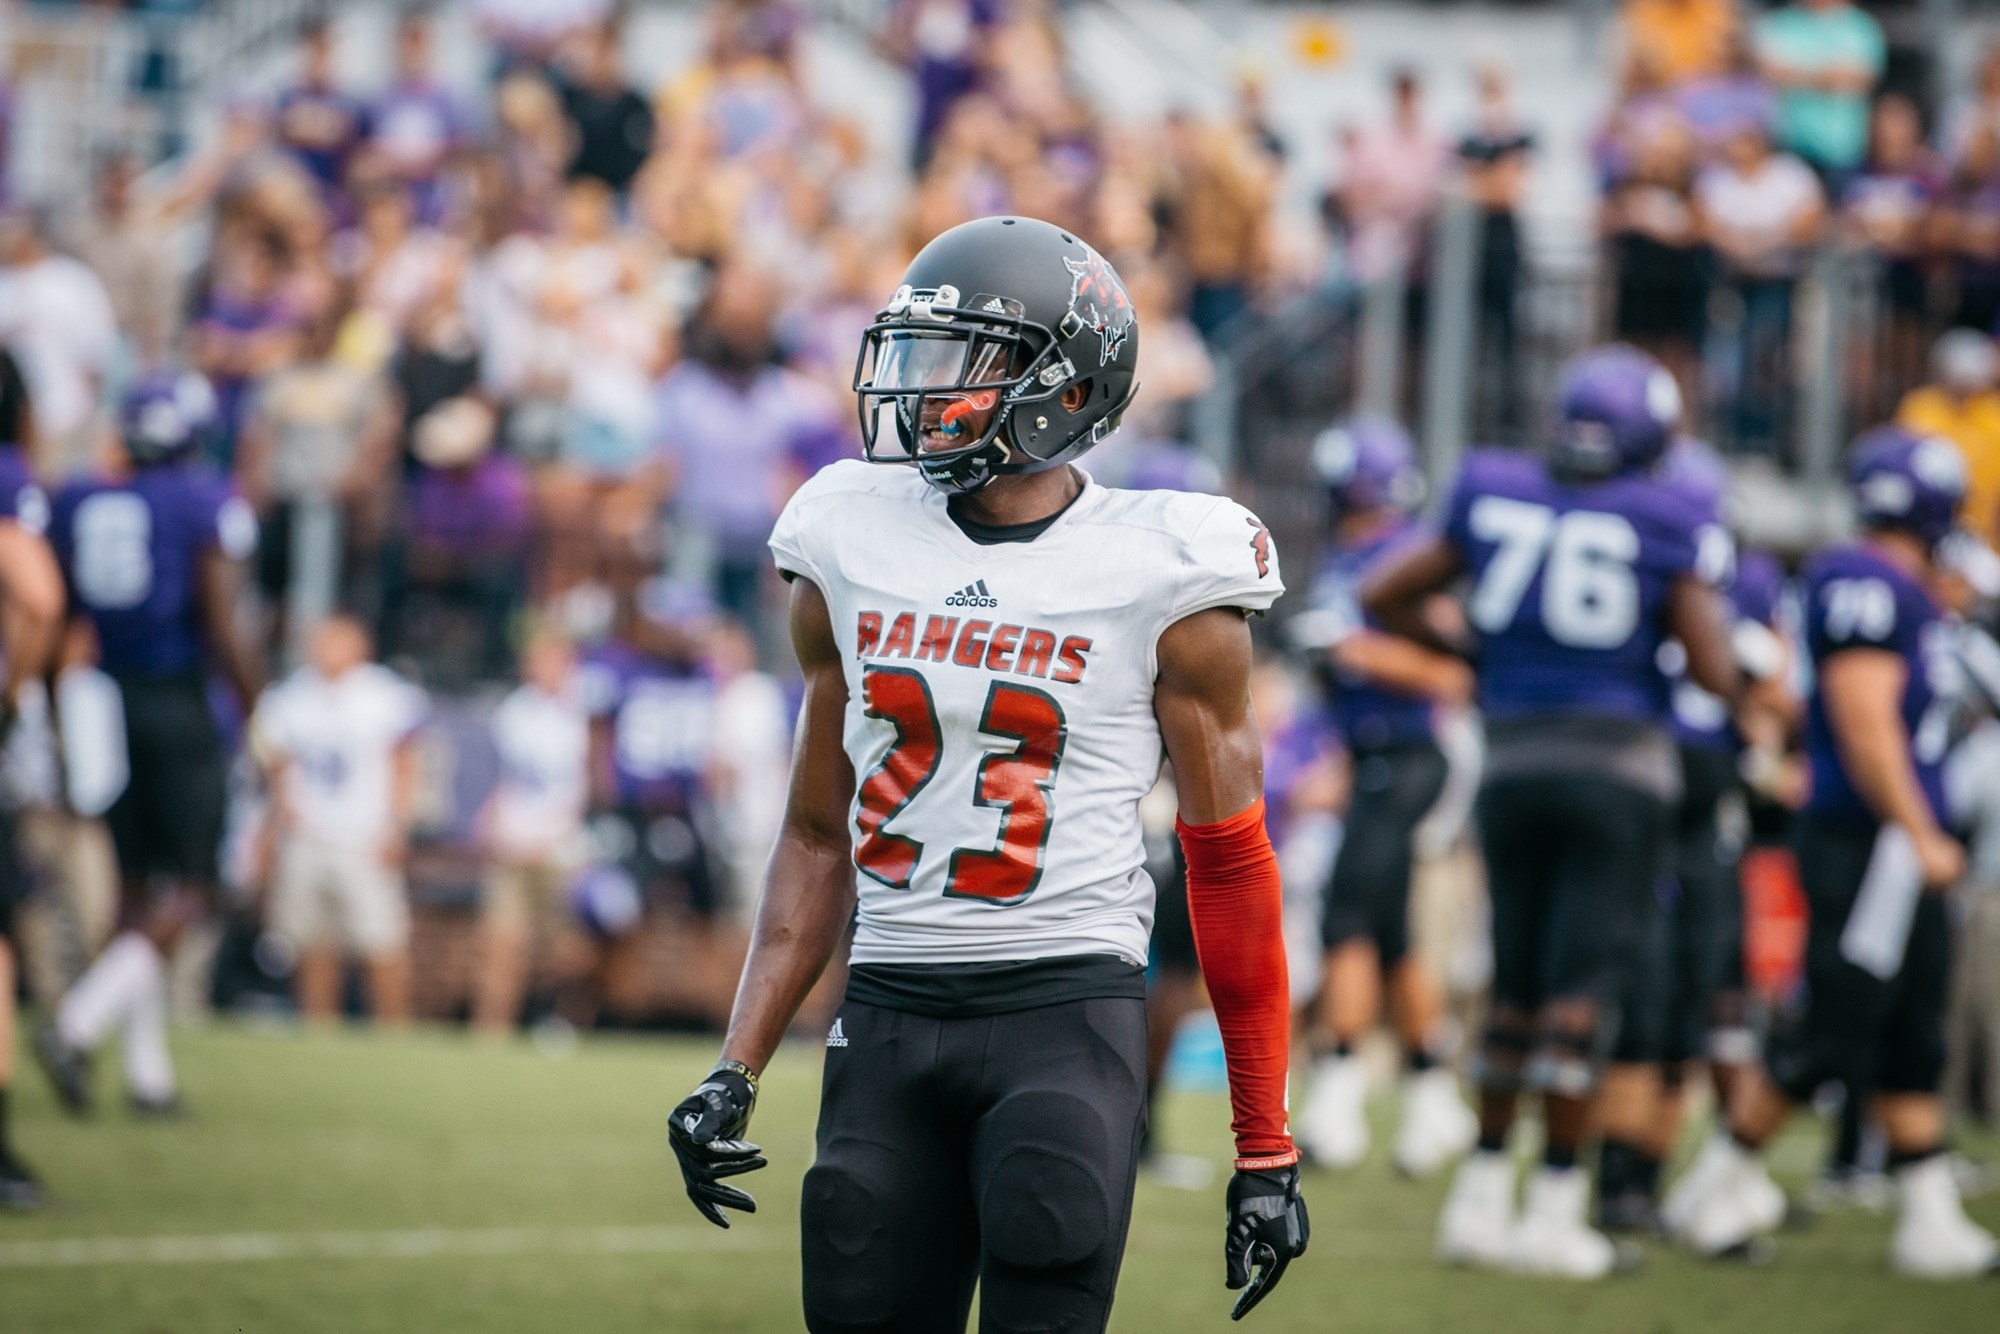 Aharon Barnes - 2019 - Football - Northwestern Oklahoma